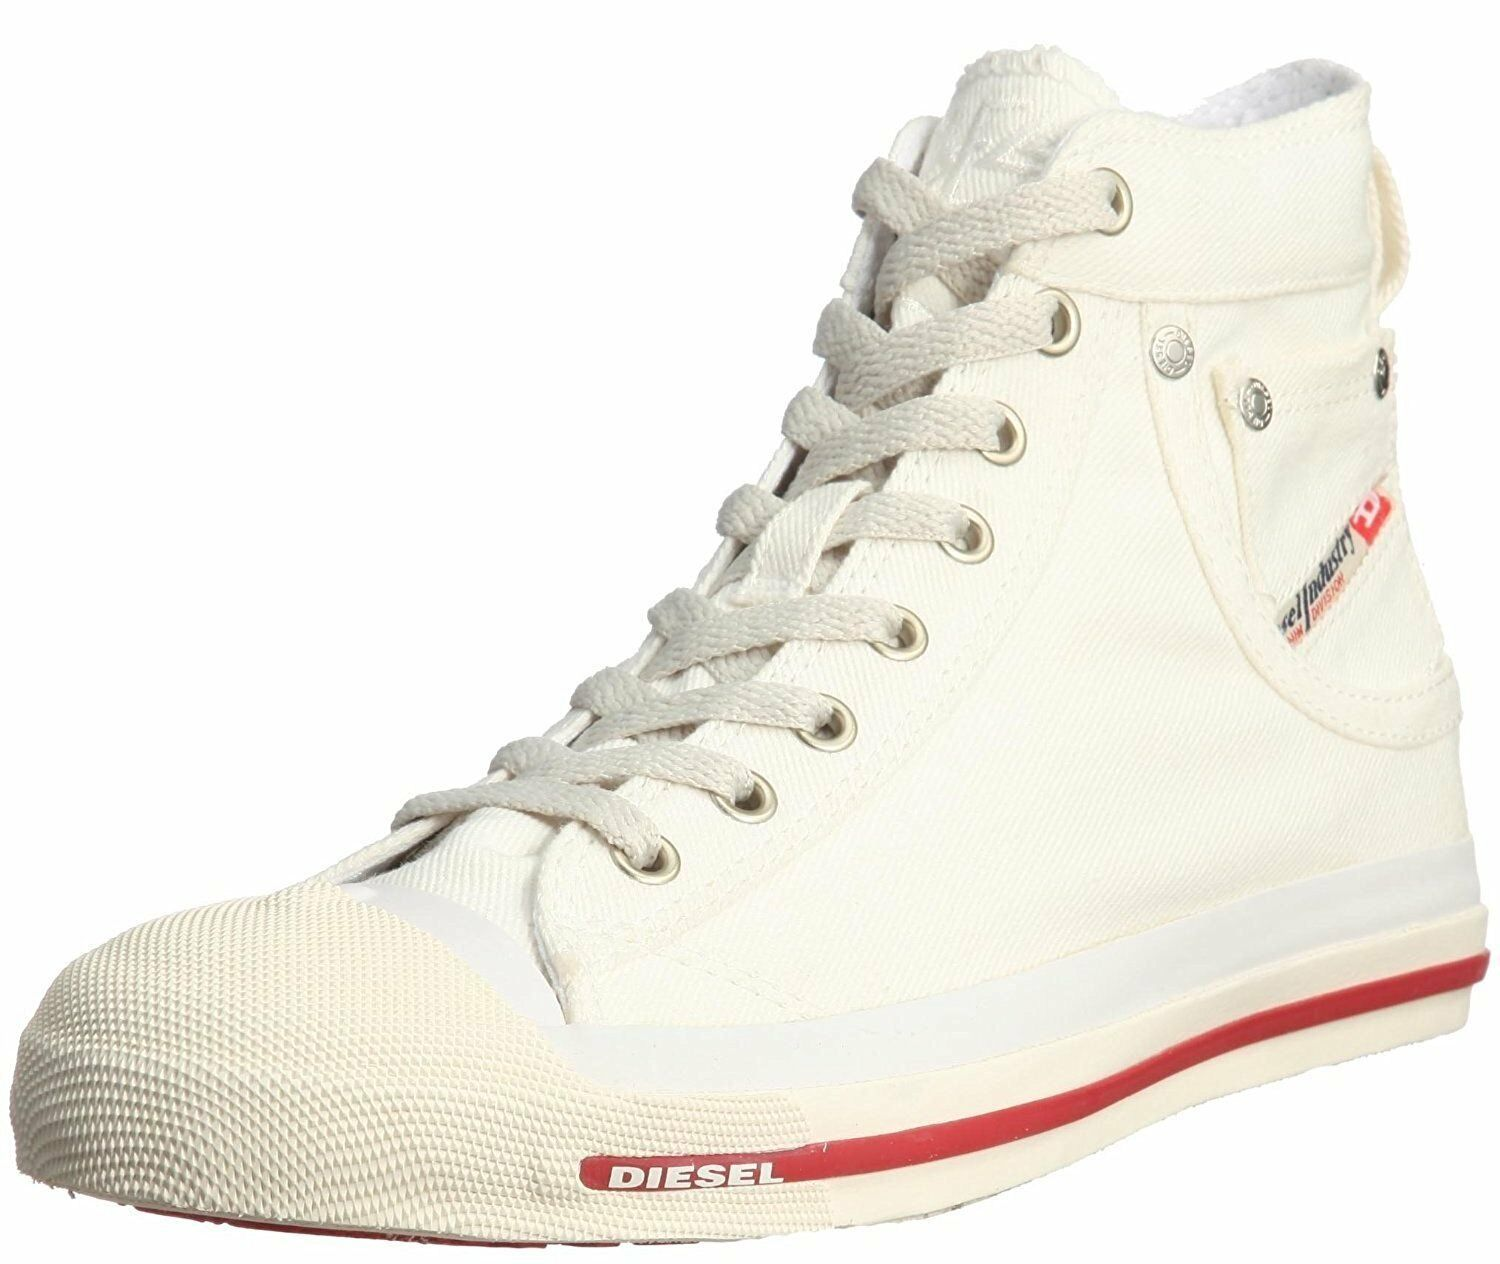 Diesel Mens Exposure Hi White Red Mens Diesel Canvas New Trainers Shoes Boots 0a283a